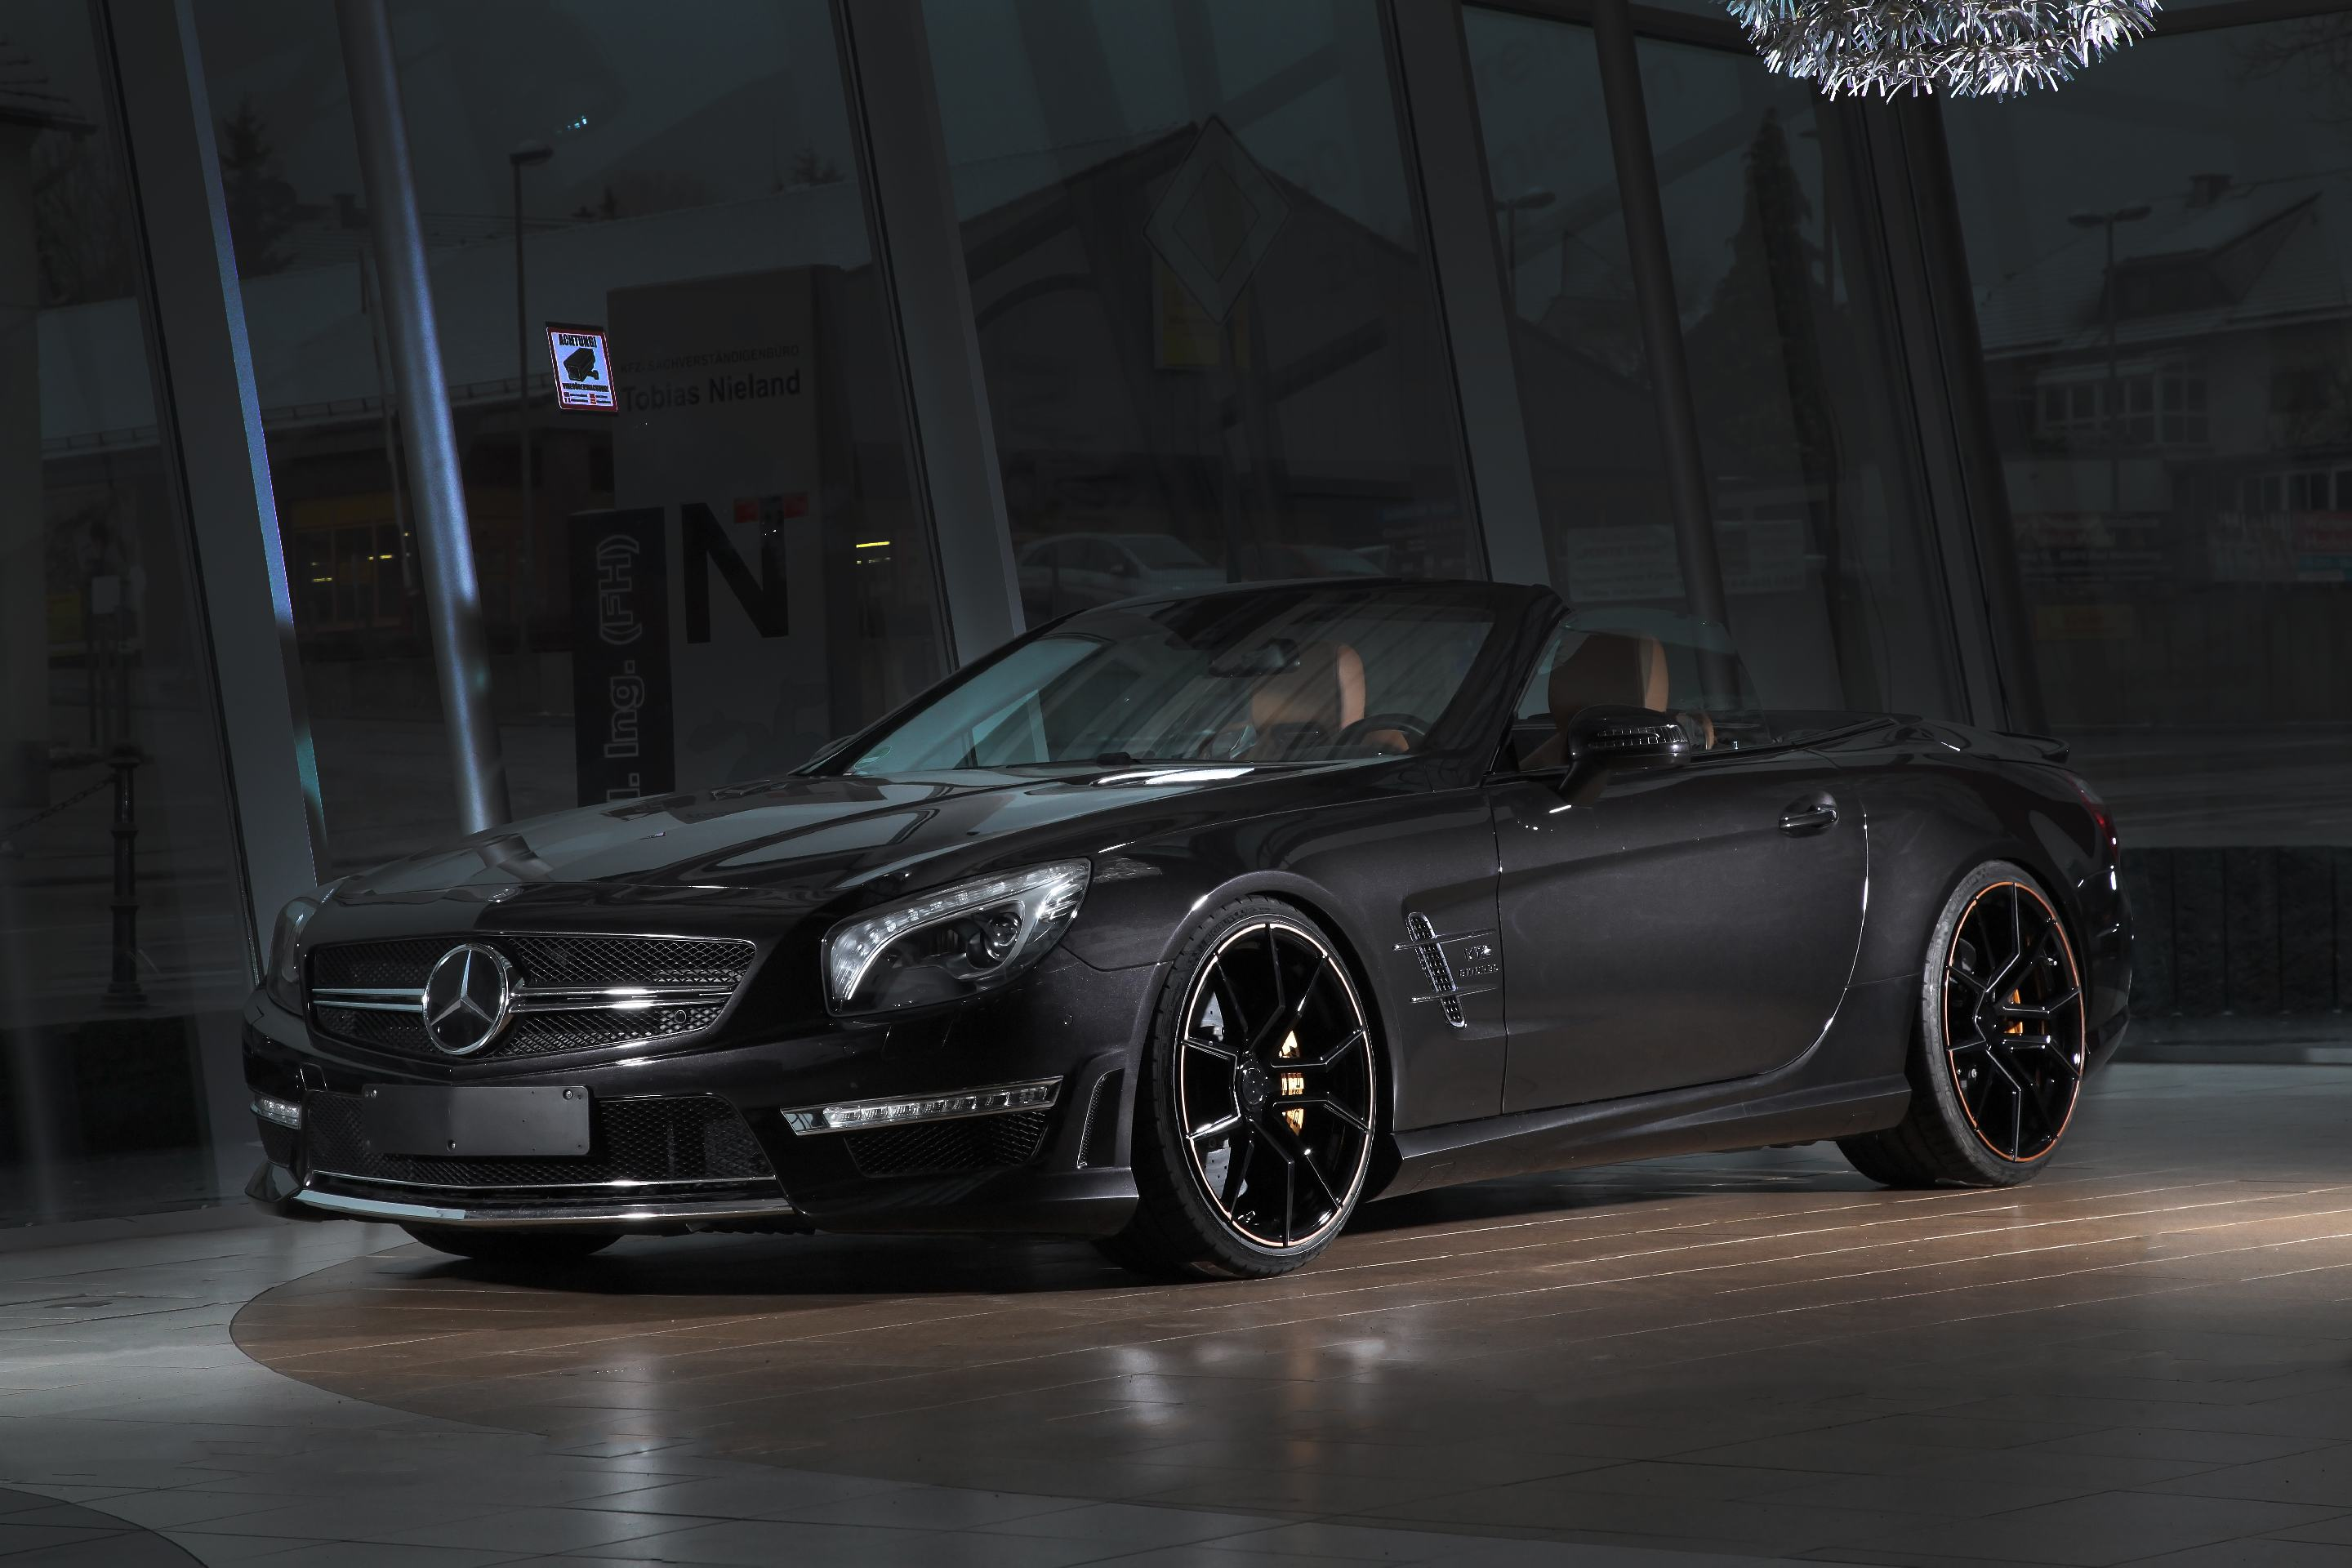 mercedes sl r321 drago felgen inden design schmidt felgen. Black Bedroom Furniture Sets. Home Design Ideas